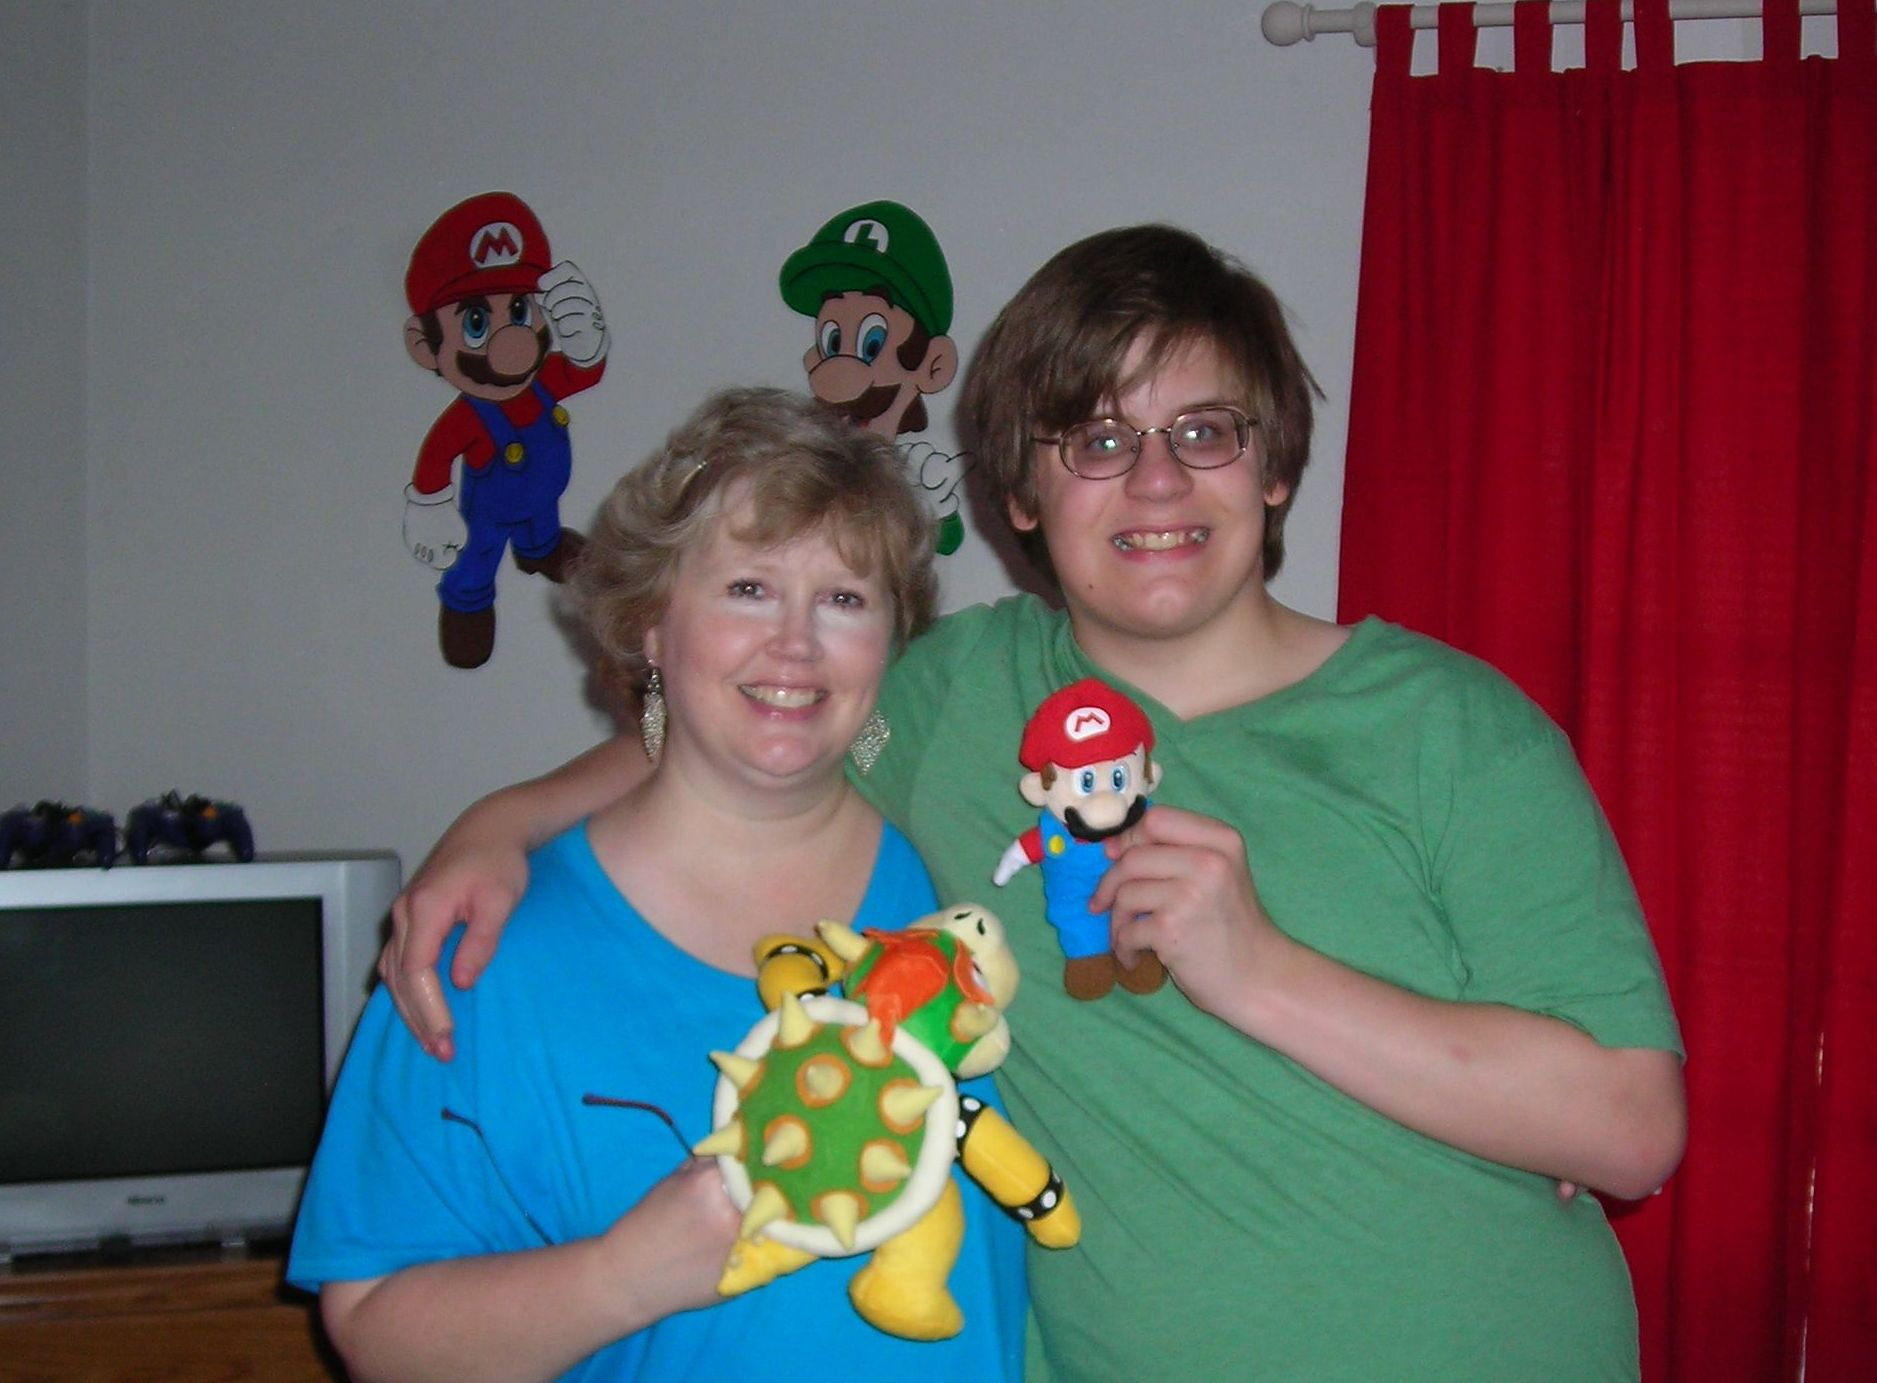 playing around with bowser and mario. can\'t believe how tall my boy is!